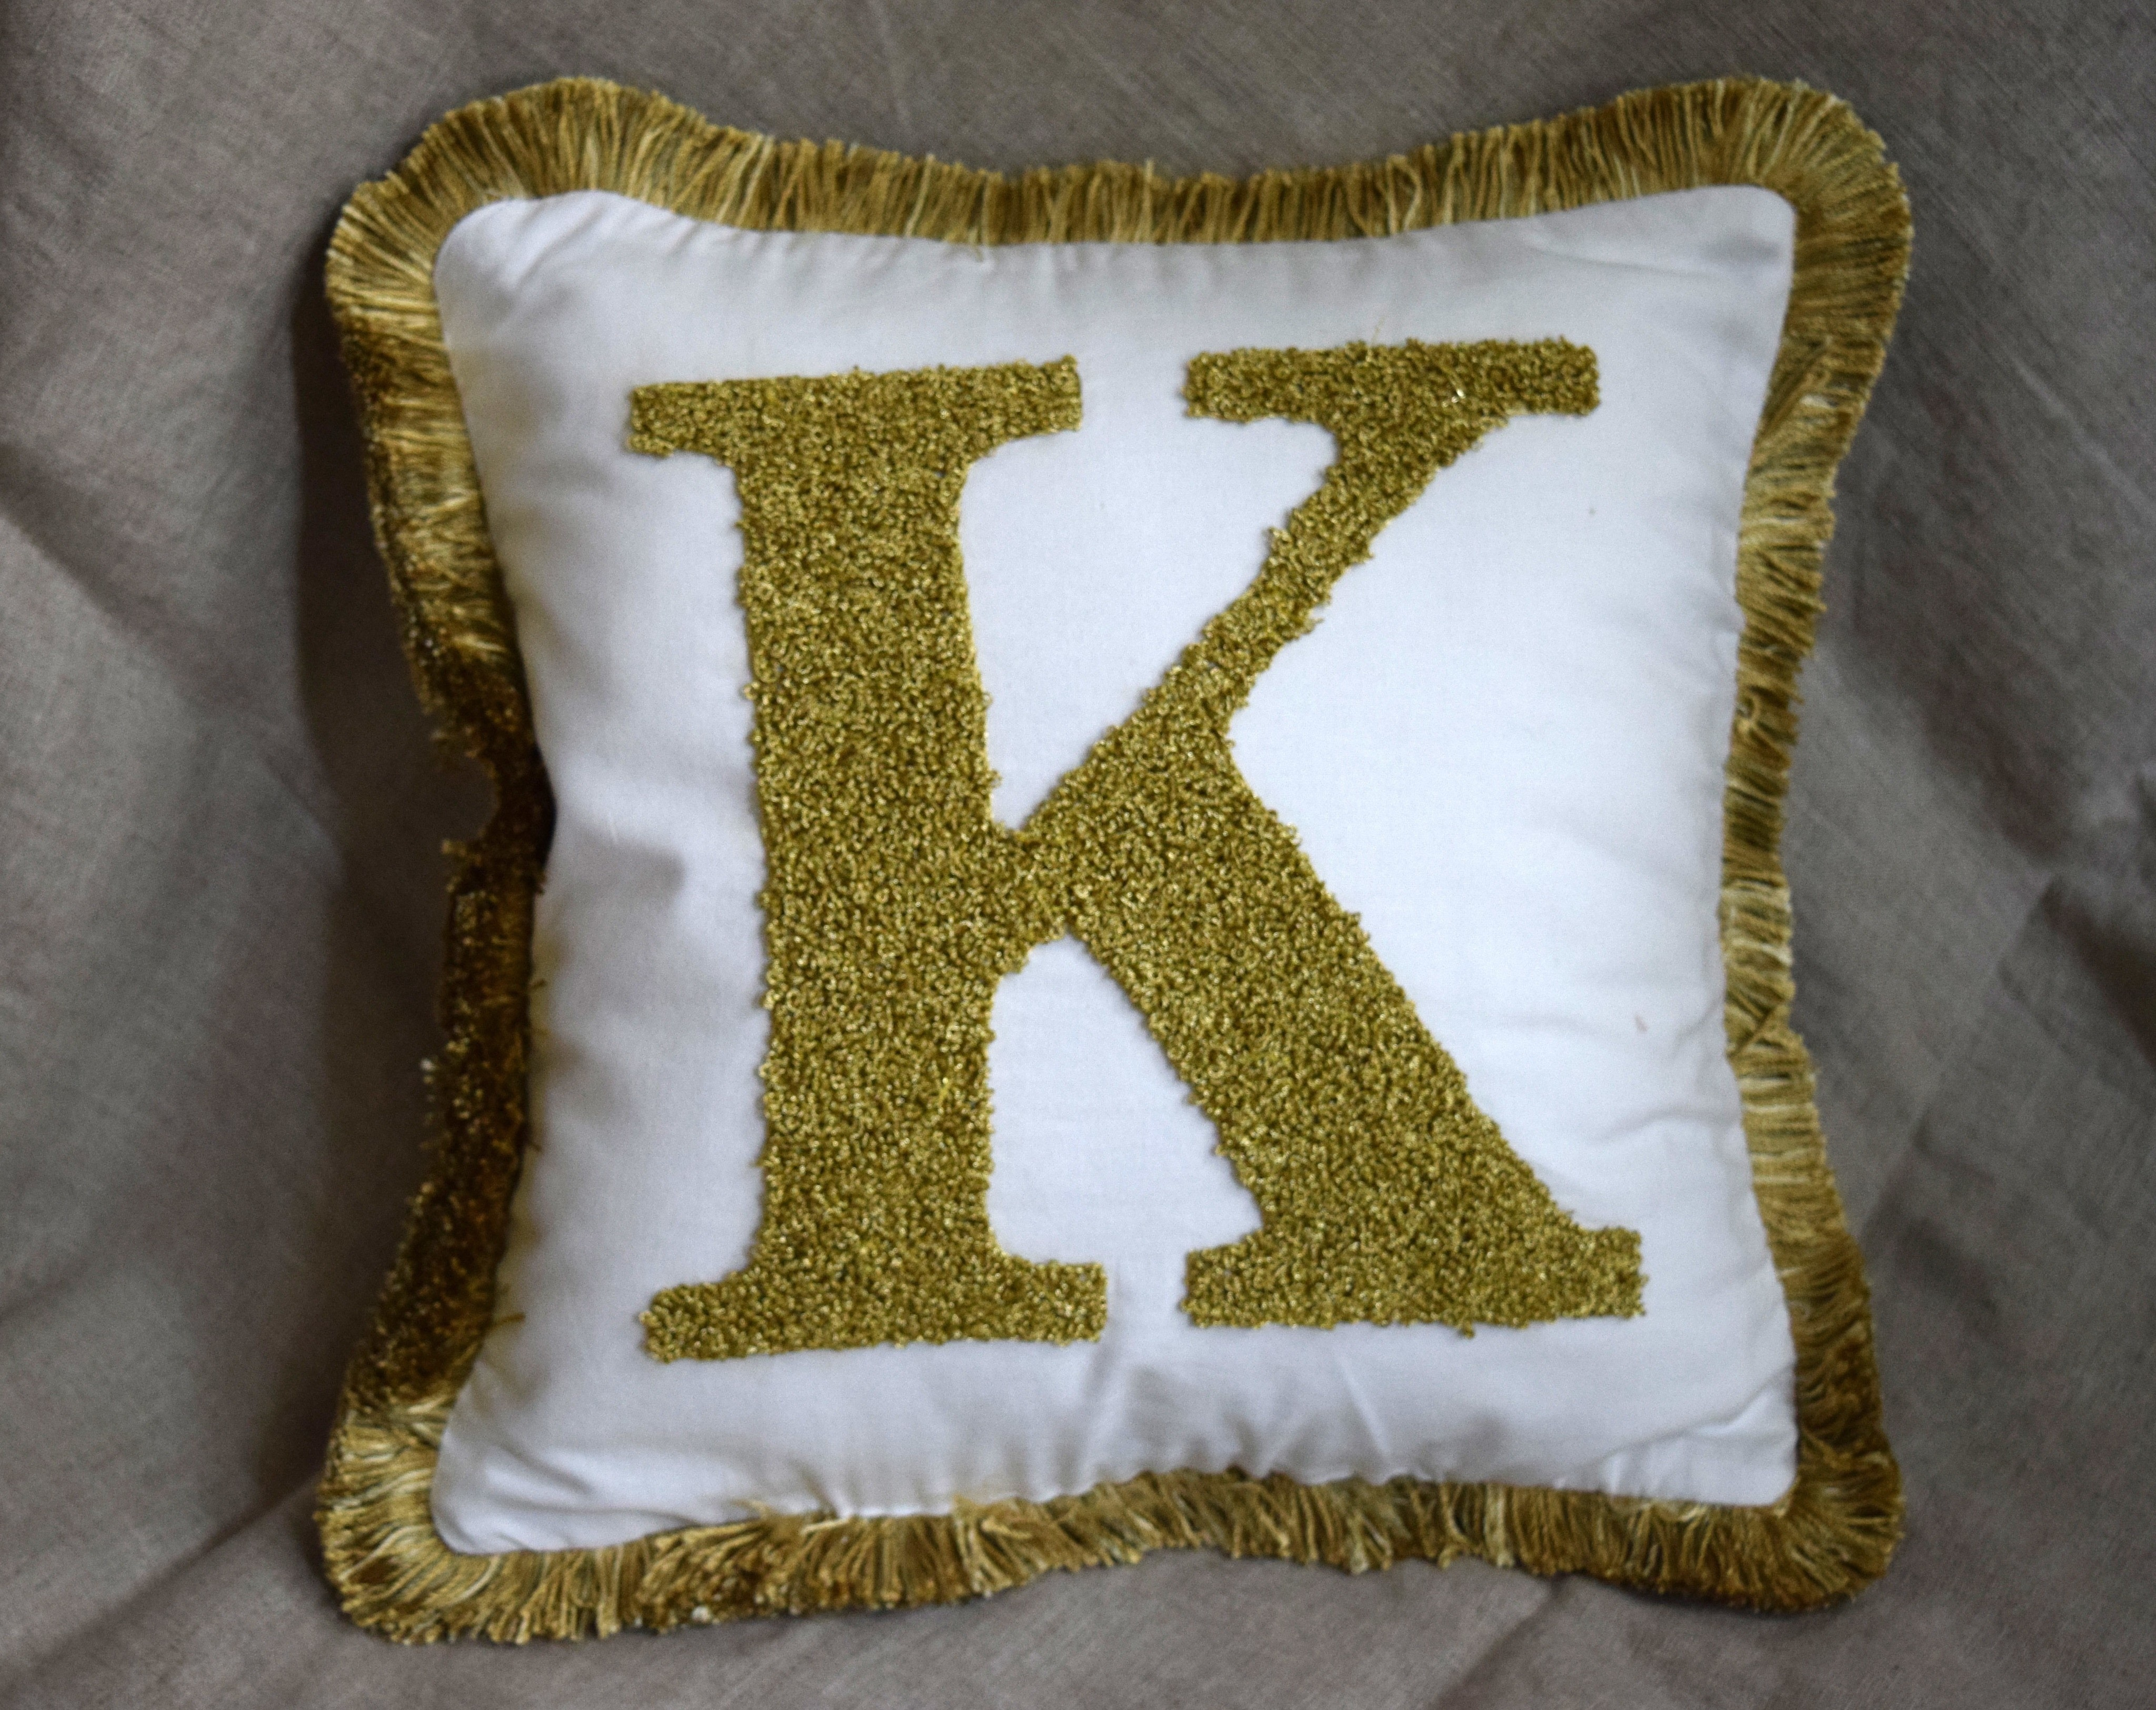 kupon cushion to happy blanket my little gallery emoji pinterest aliesemeyer initial pillow make how pillows diy